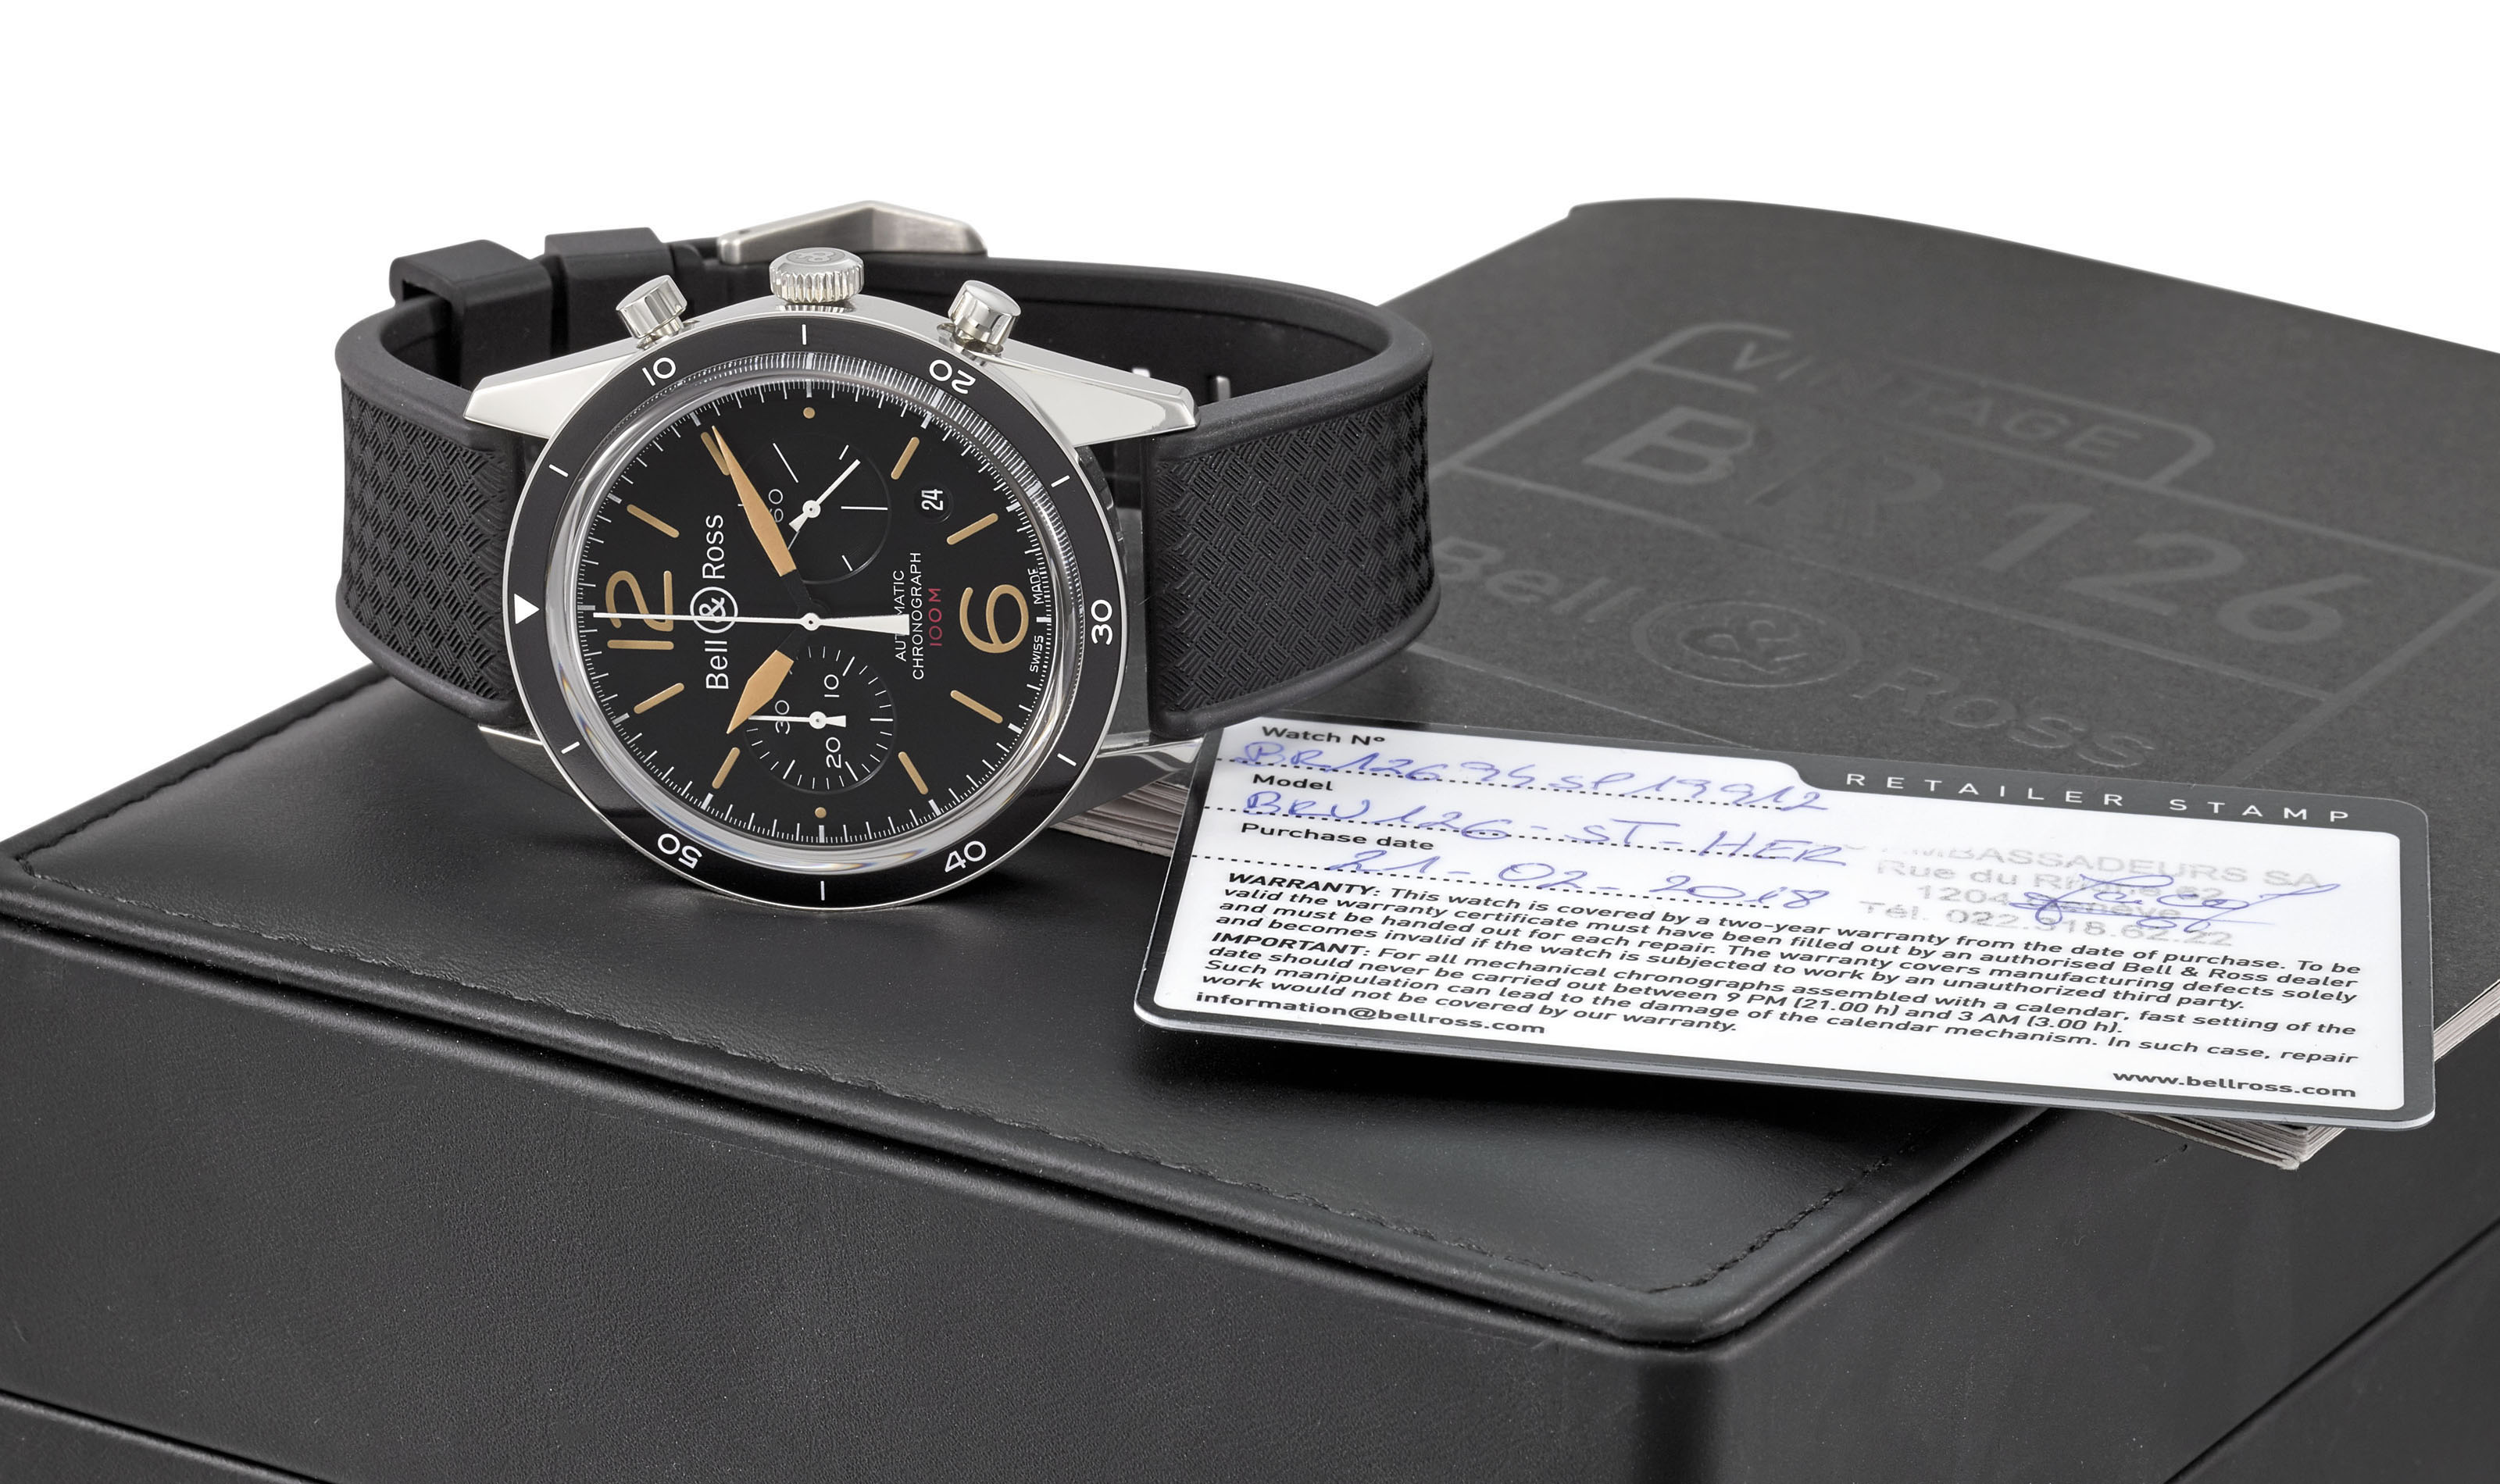 BELL & ROSS A STAINLESS STEEL